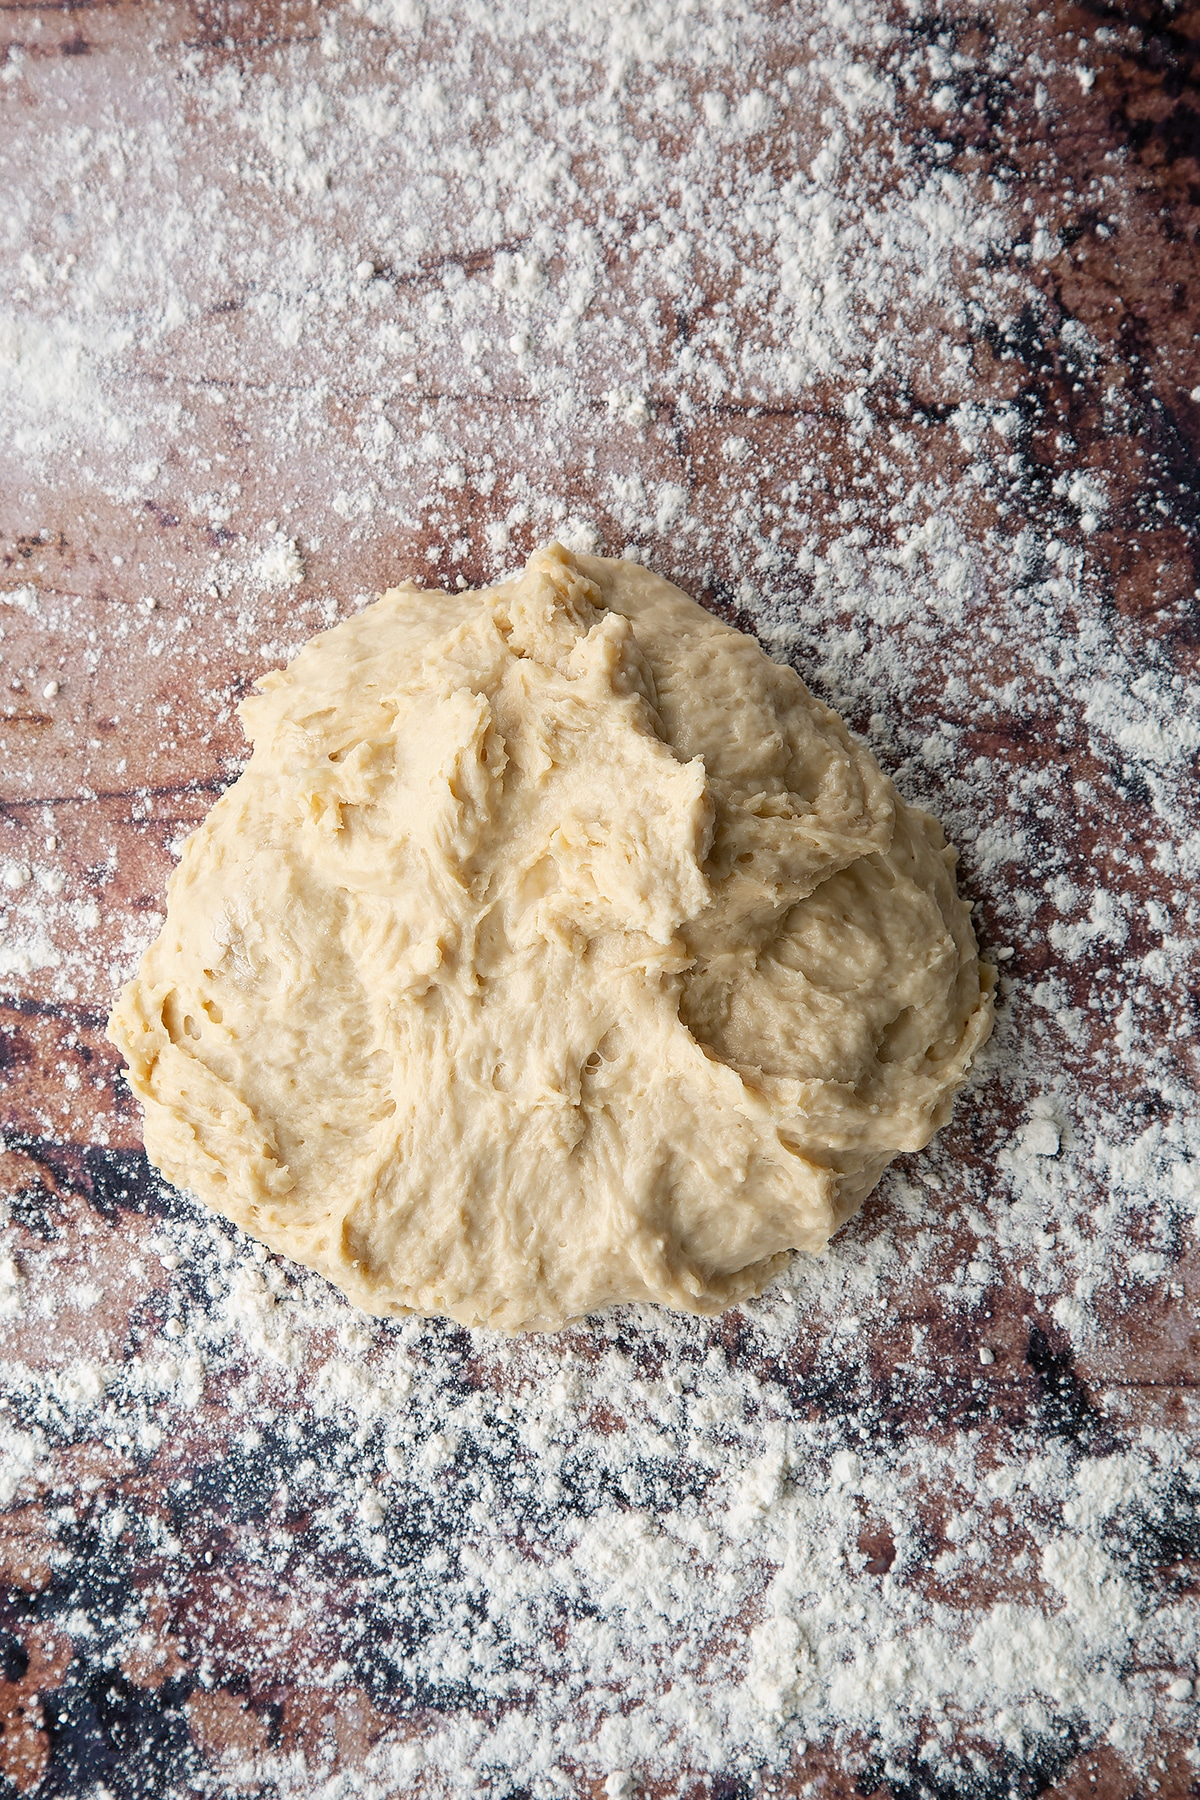 Overhead shot of sticky white dough on a floured surface